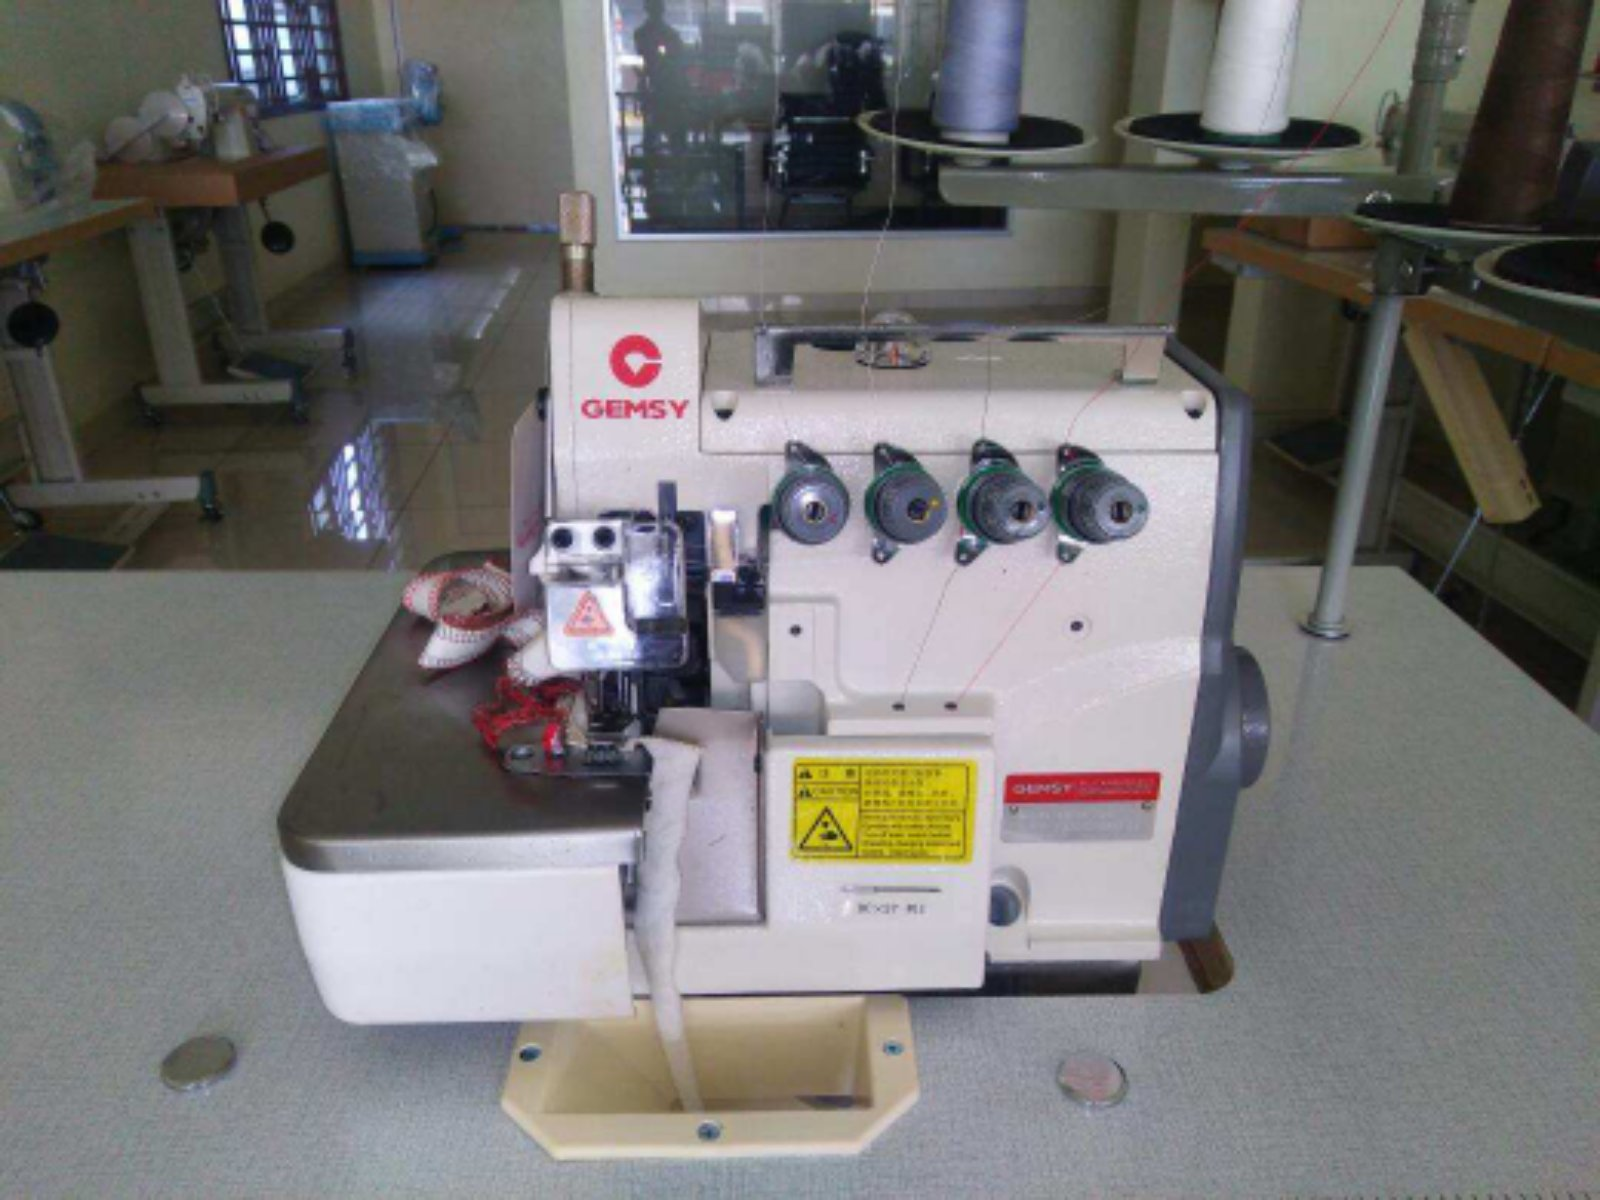 New Model Industrial Overlock Sewing Machine